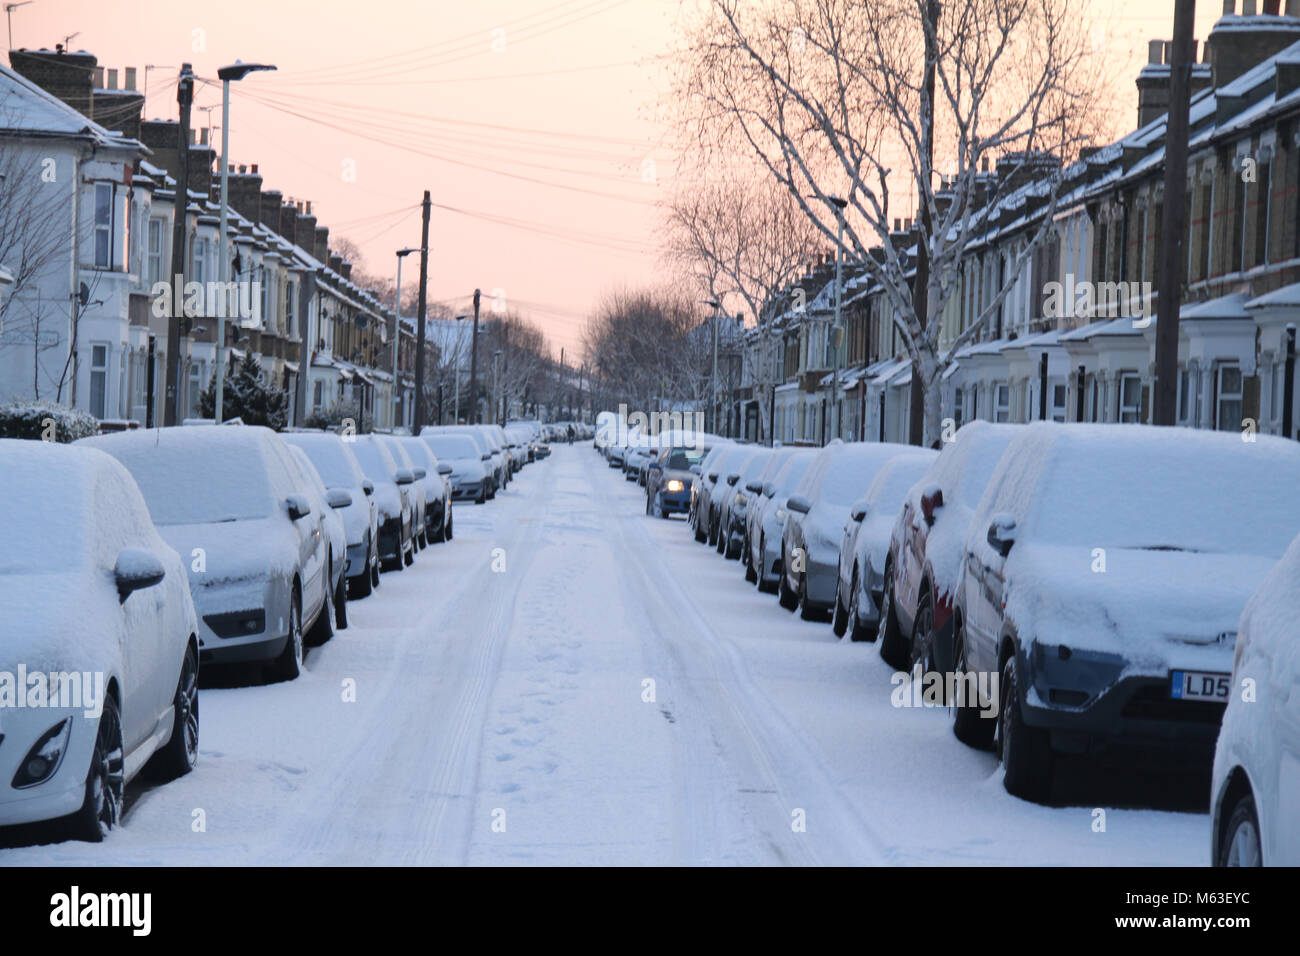 London, UK. 28th Feb, 2018. UK Weather: Streets of East London were covered with snow following a shower on 28 February. - Stock Image